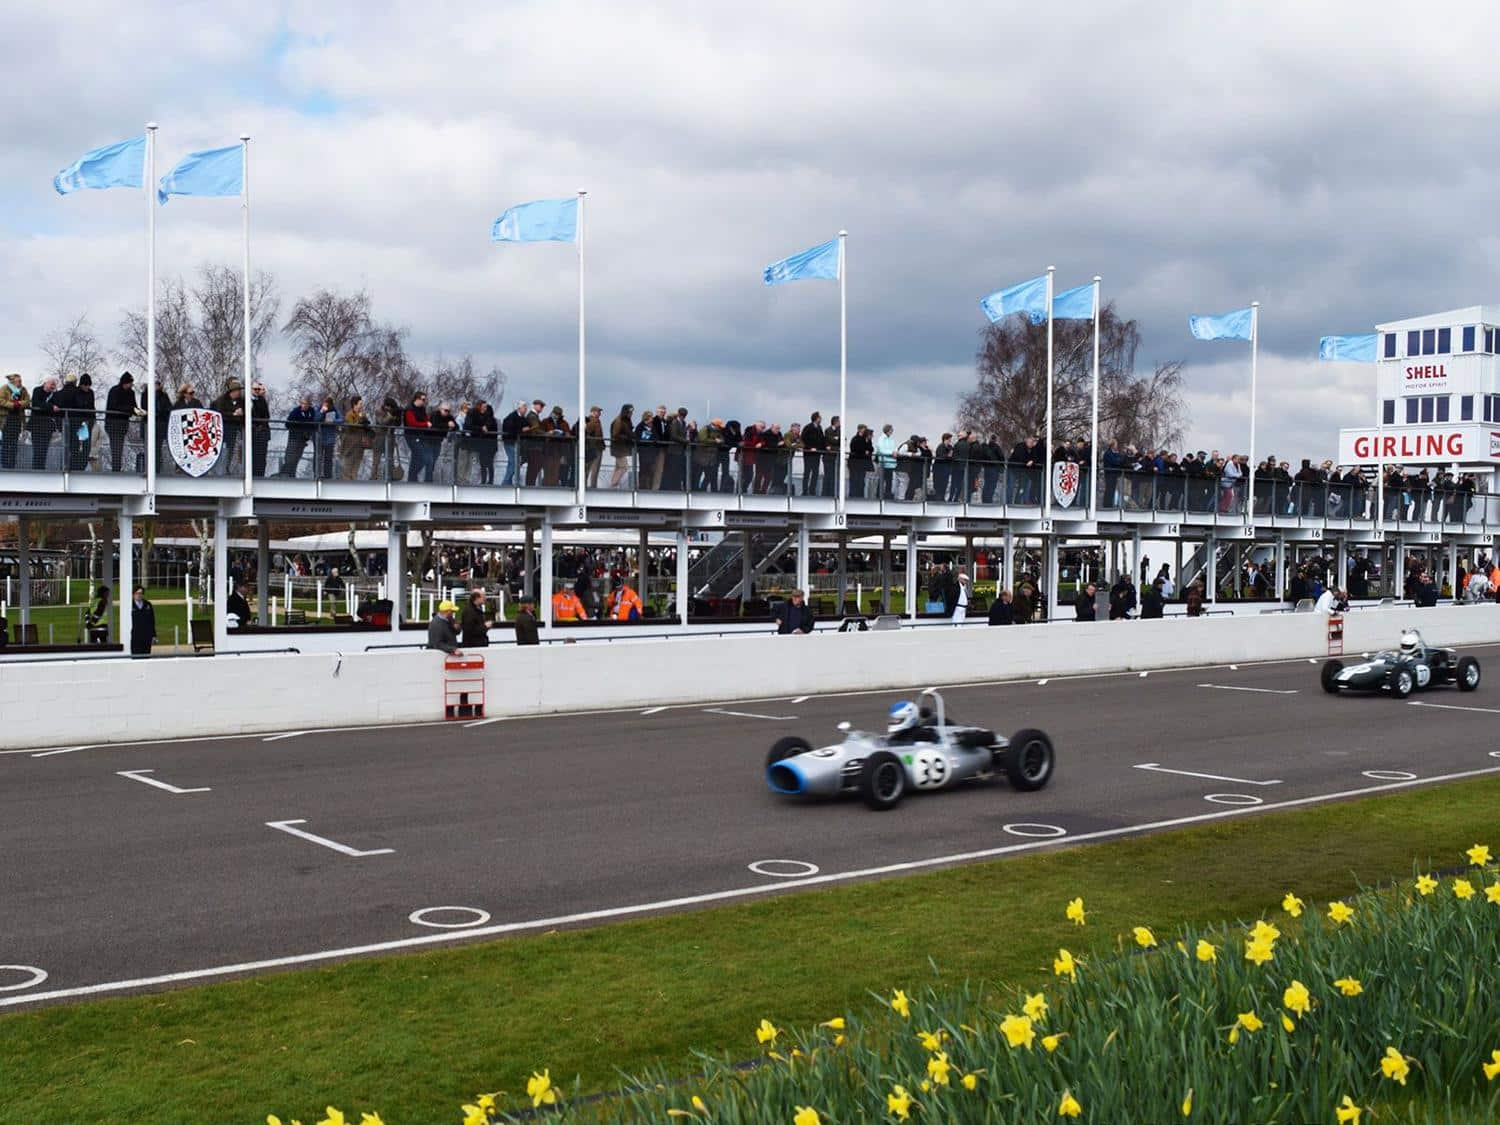 Cars race along the pit straight during practice for the Taylor Trophy at the 73rd Goodwood Members' Meeting